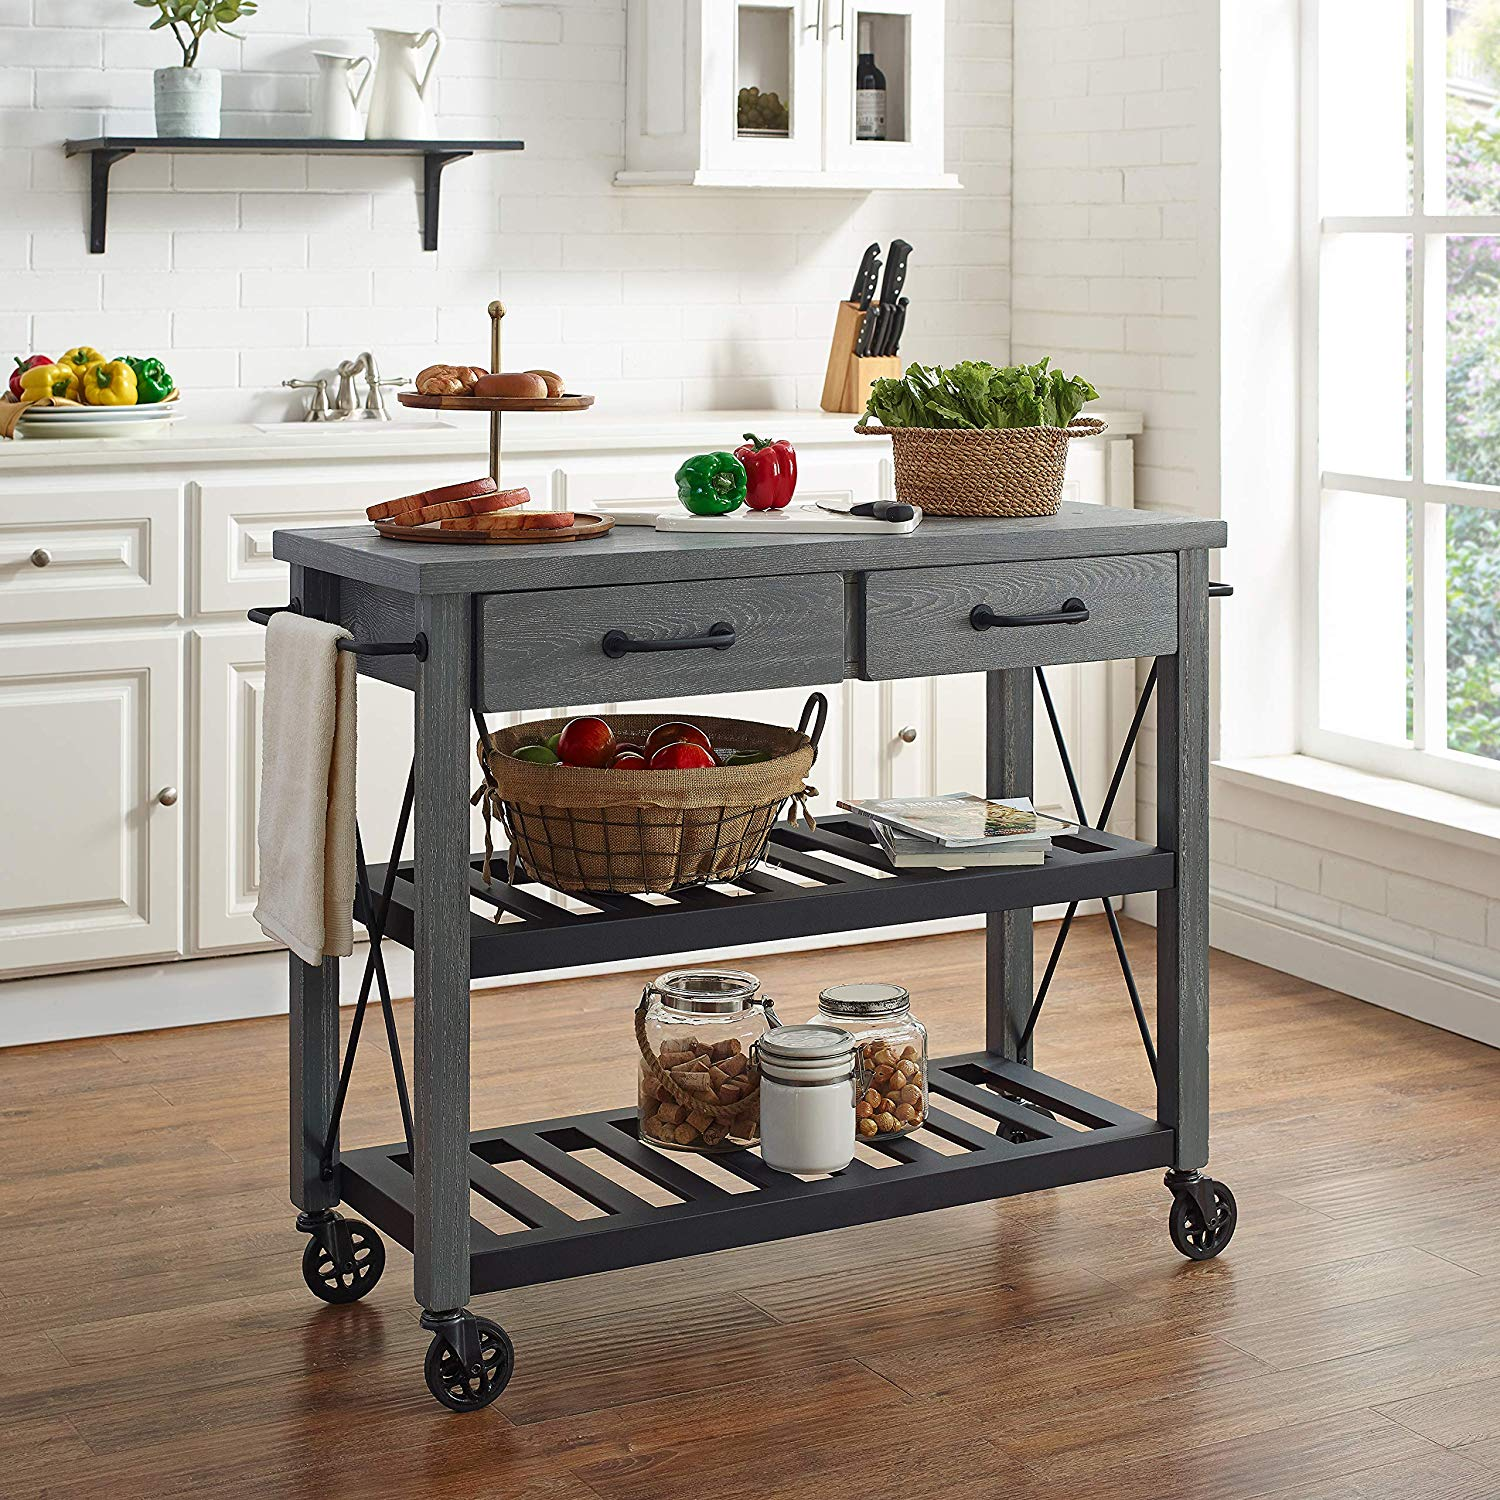 10 Best Selling Small Rolling Kitchen Islands On Amazon Cozyhome 101